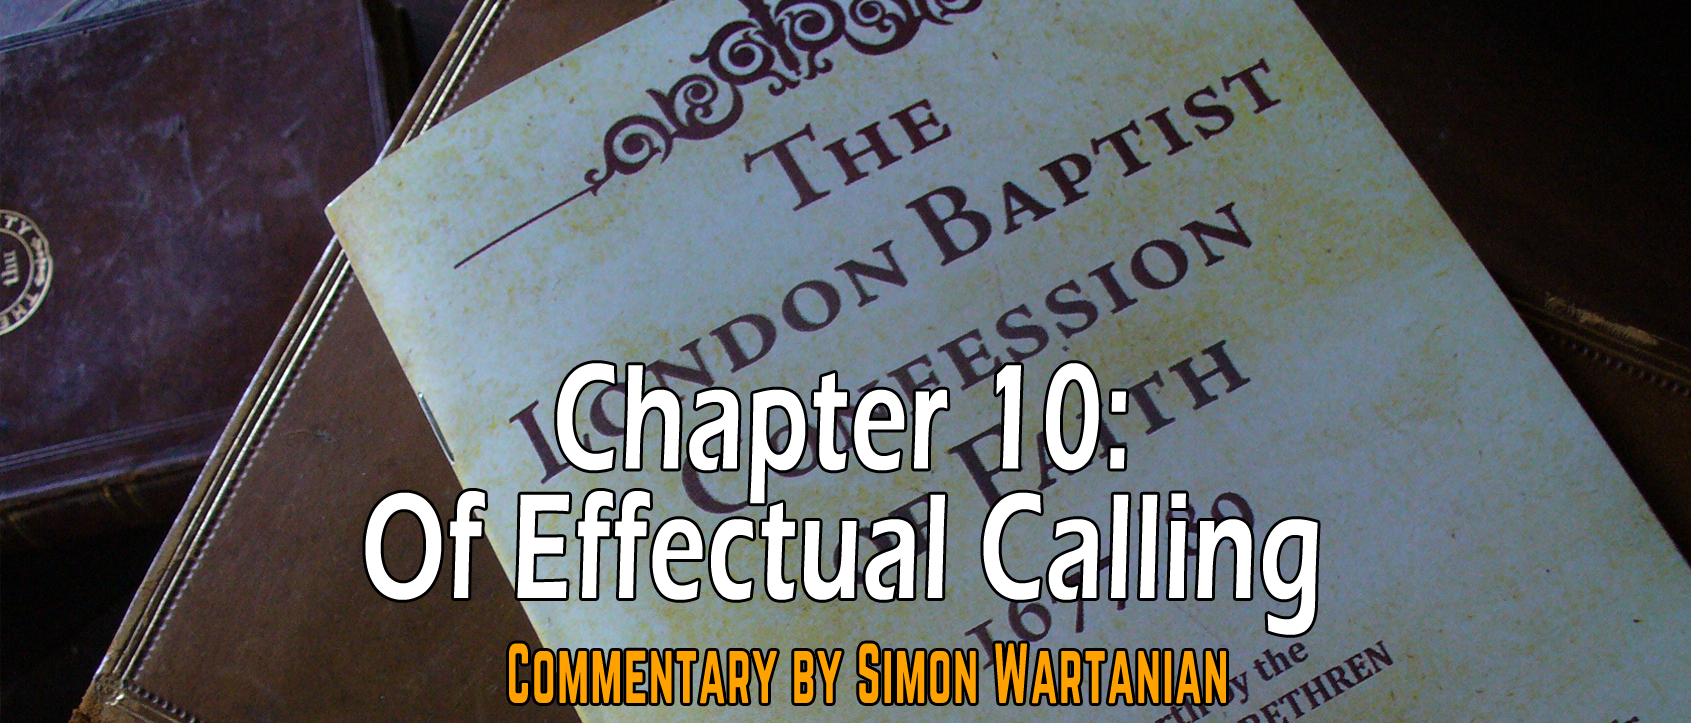 1689 Baptist Confession Chapter 10: Of Effectual Calling - Commentary